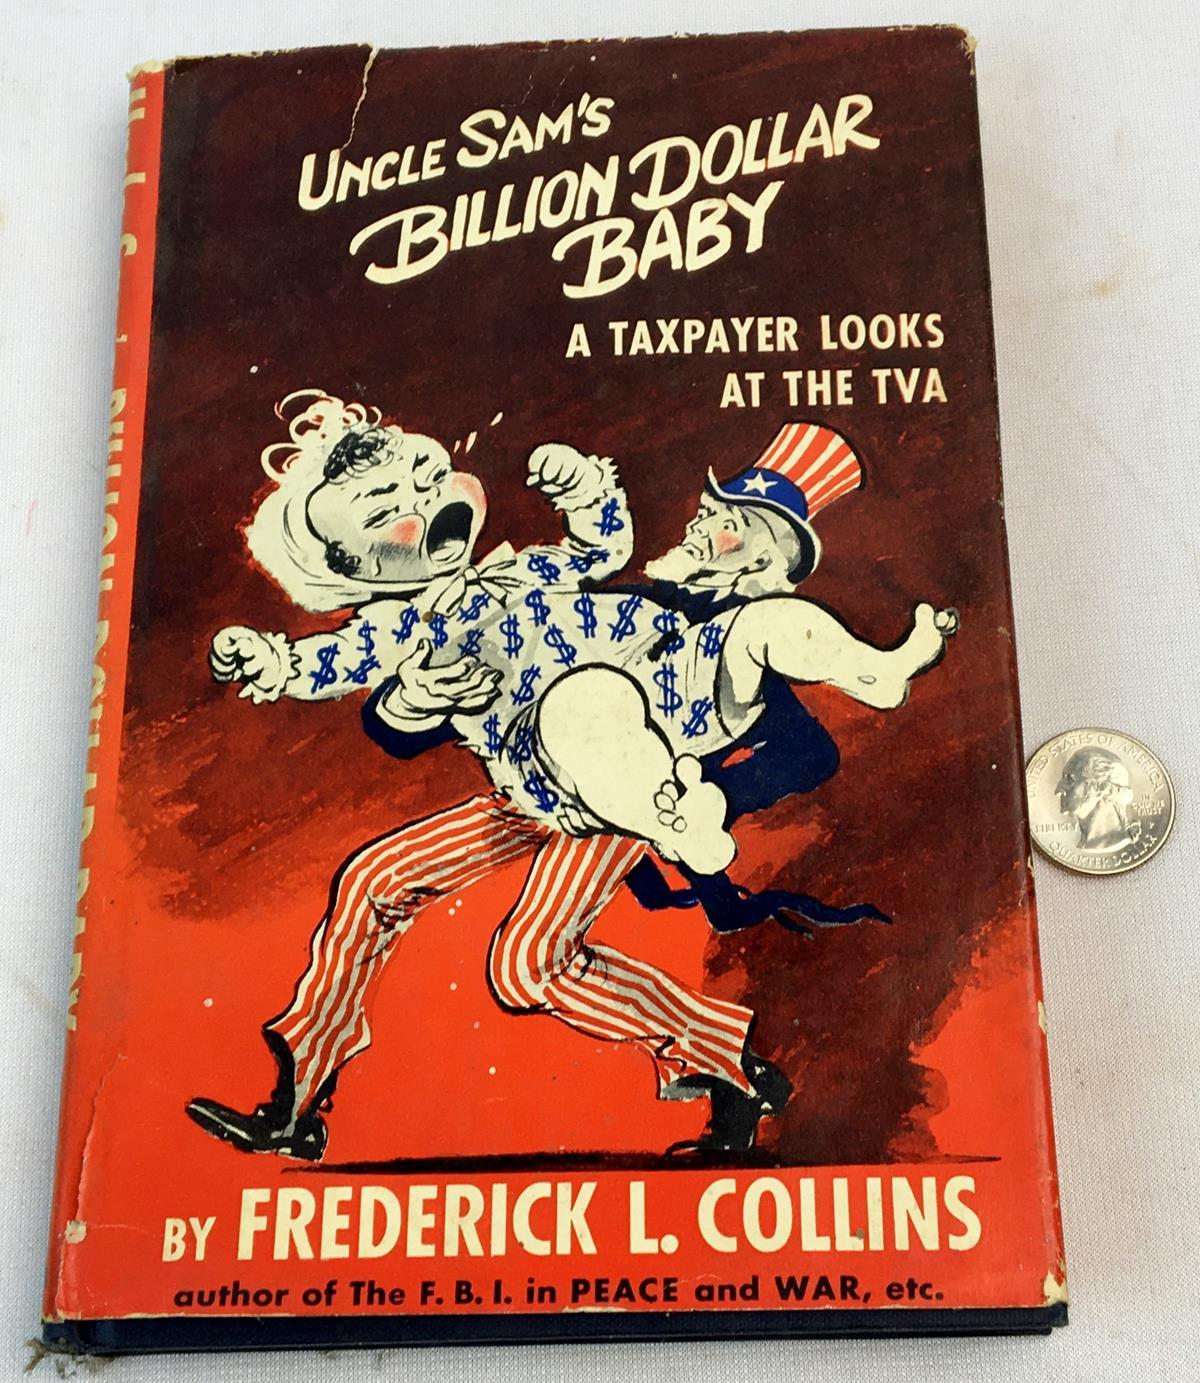 1945 Uncle Sam's Billion Dollar Baby: A Taxpayer Looks at The TVA by Frederick L. Collins w/ DJ FIRST EDITION